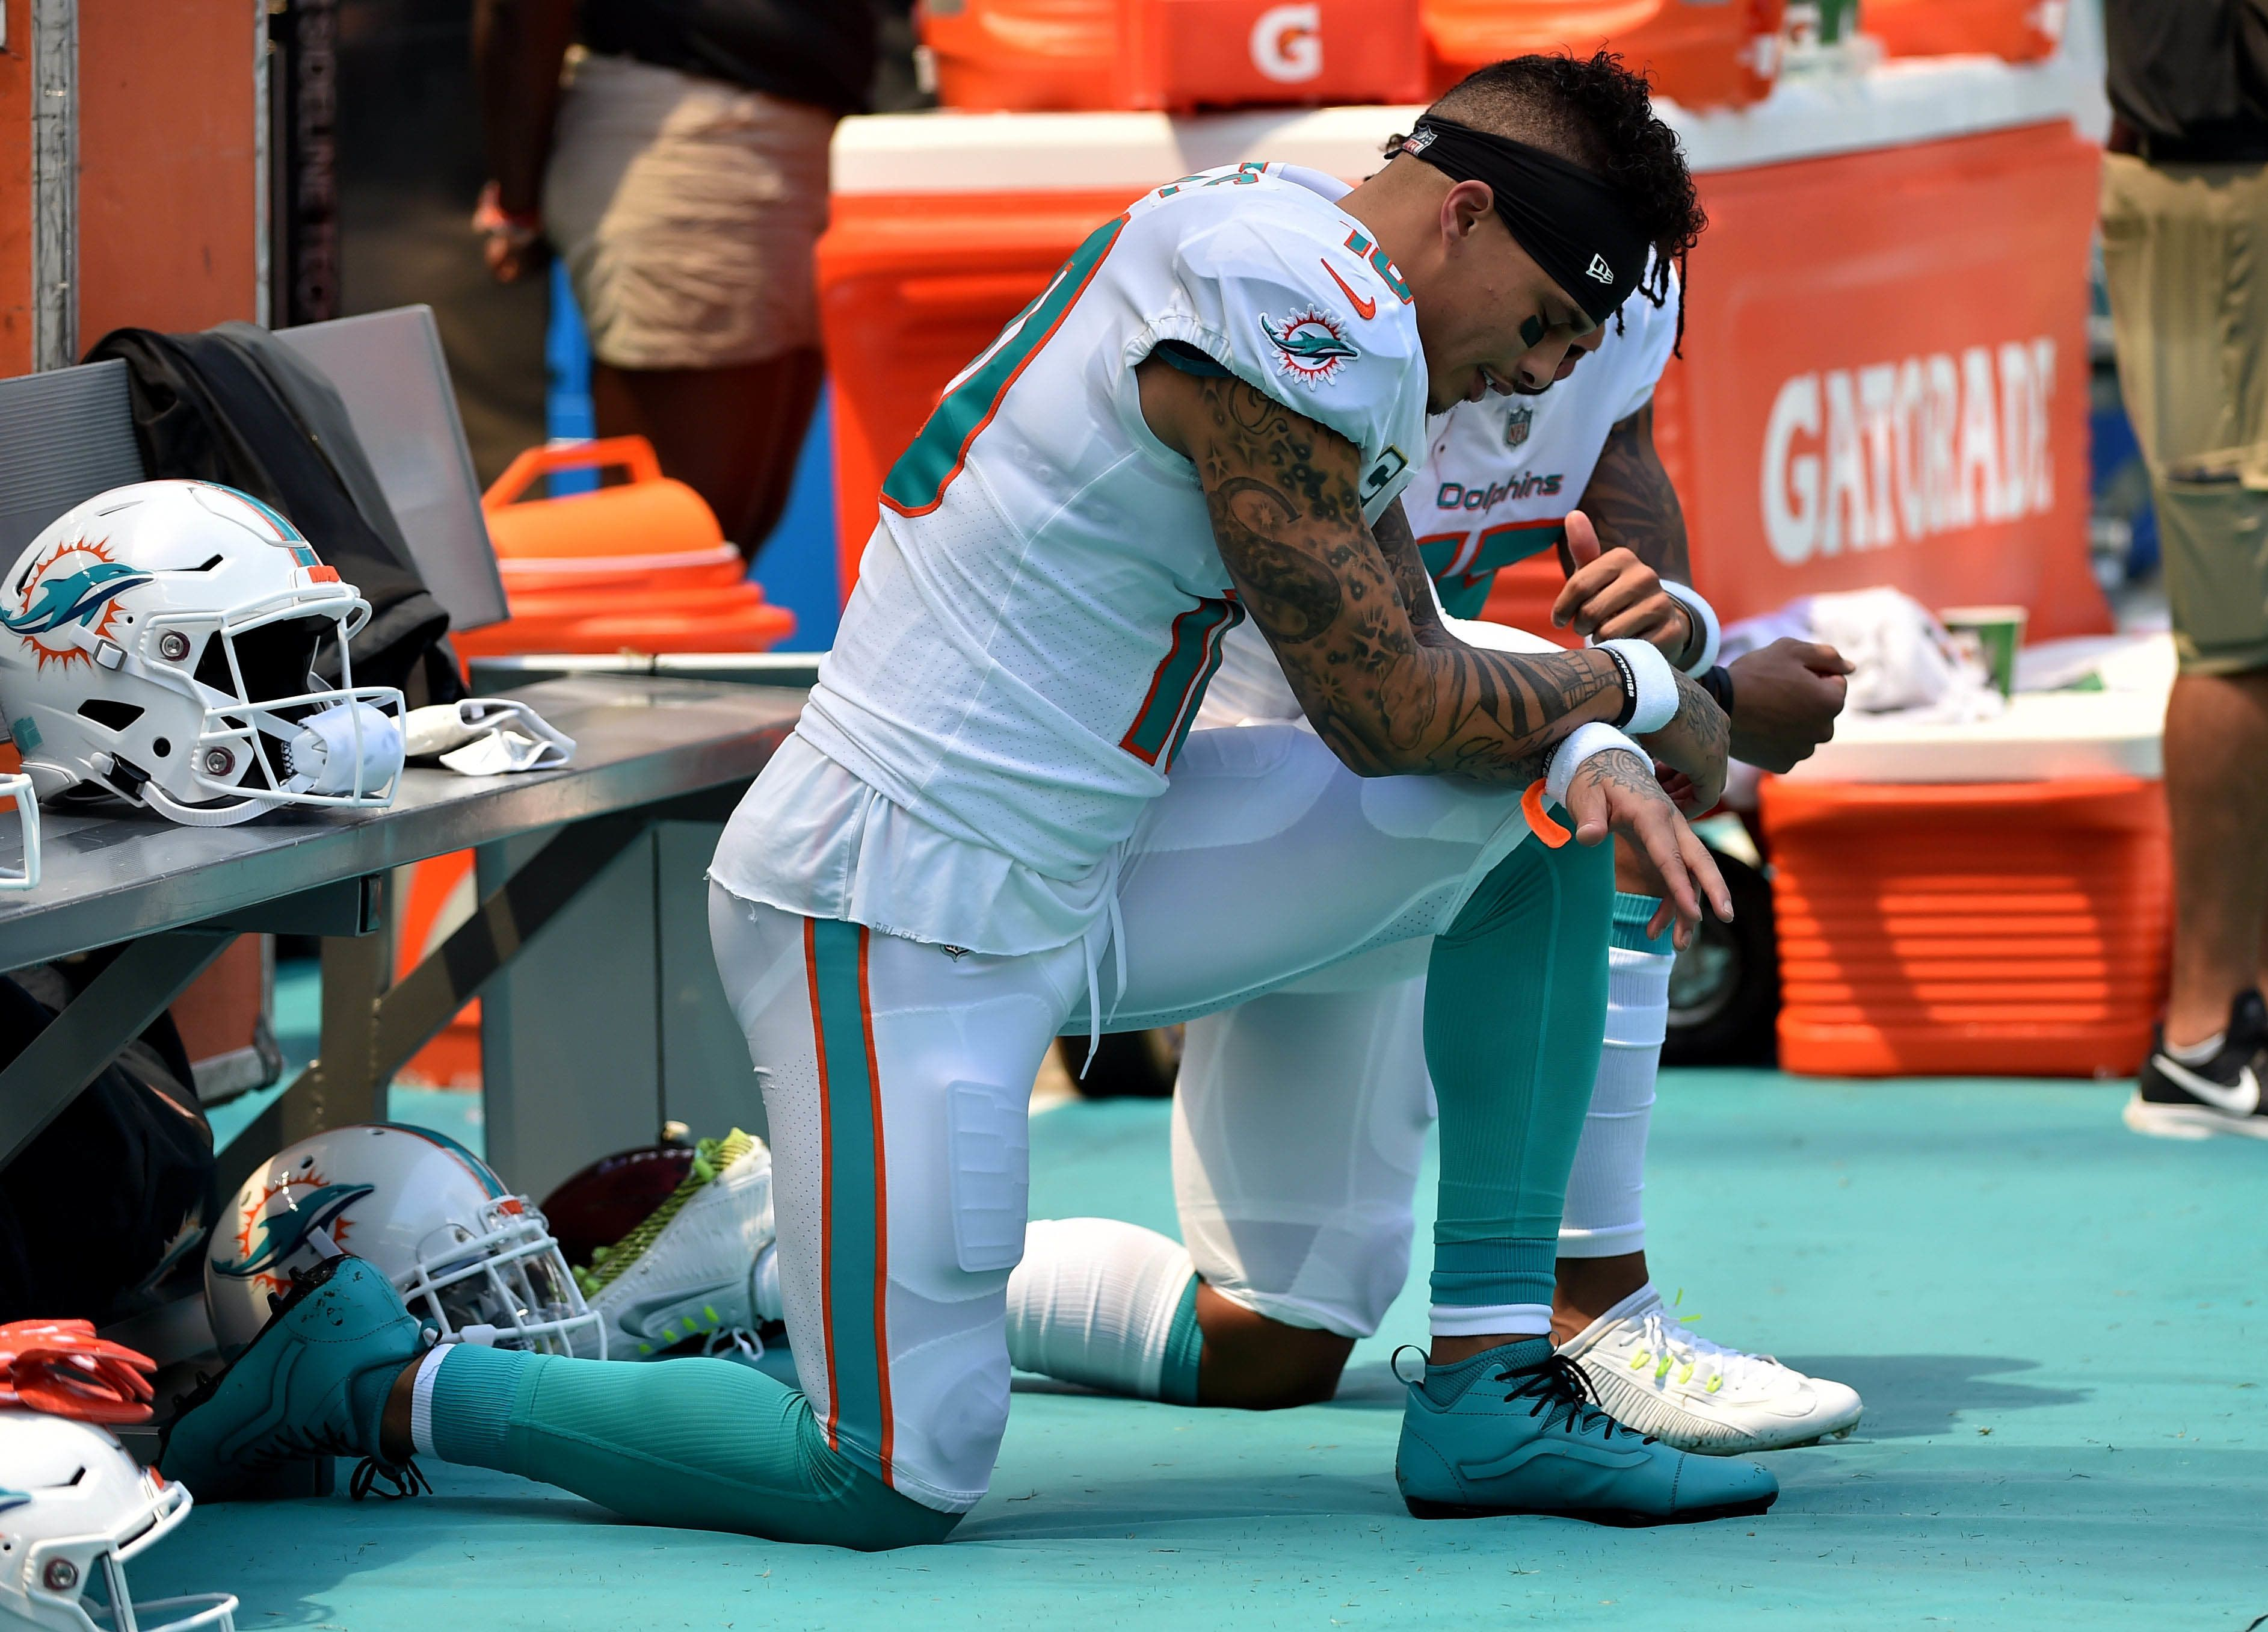 Sep 9, 2018; Miami Gardens, FL, USA; Miami Dolphins wide receiver Kenny Stills (left) and Dolphins wide receiver Albert Wilson (right) both kneel during the national anthem prior to a game against the Tennessee Titans at Hard Rock Stadium. Mandatory Credit: Steve Mitchell-USA TODAY Sports